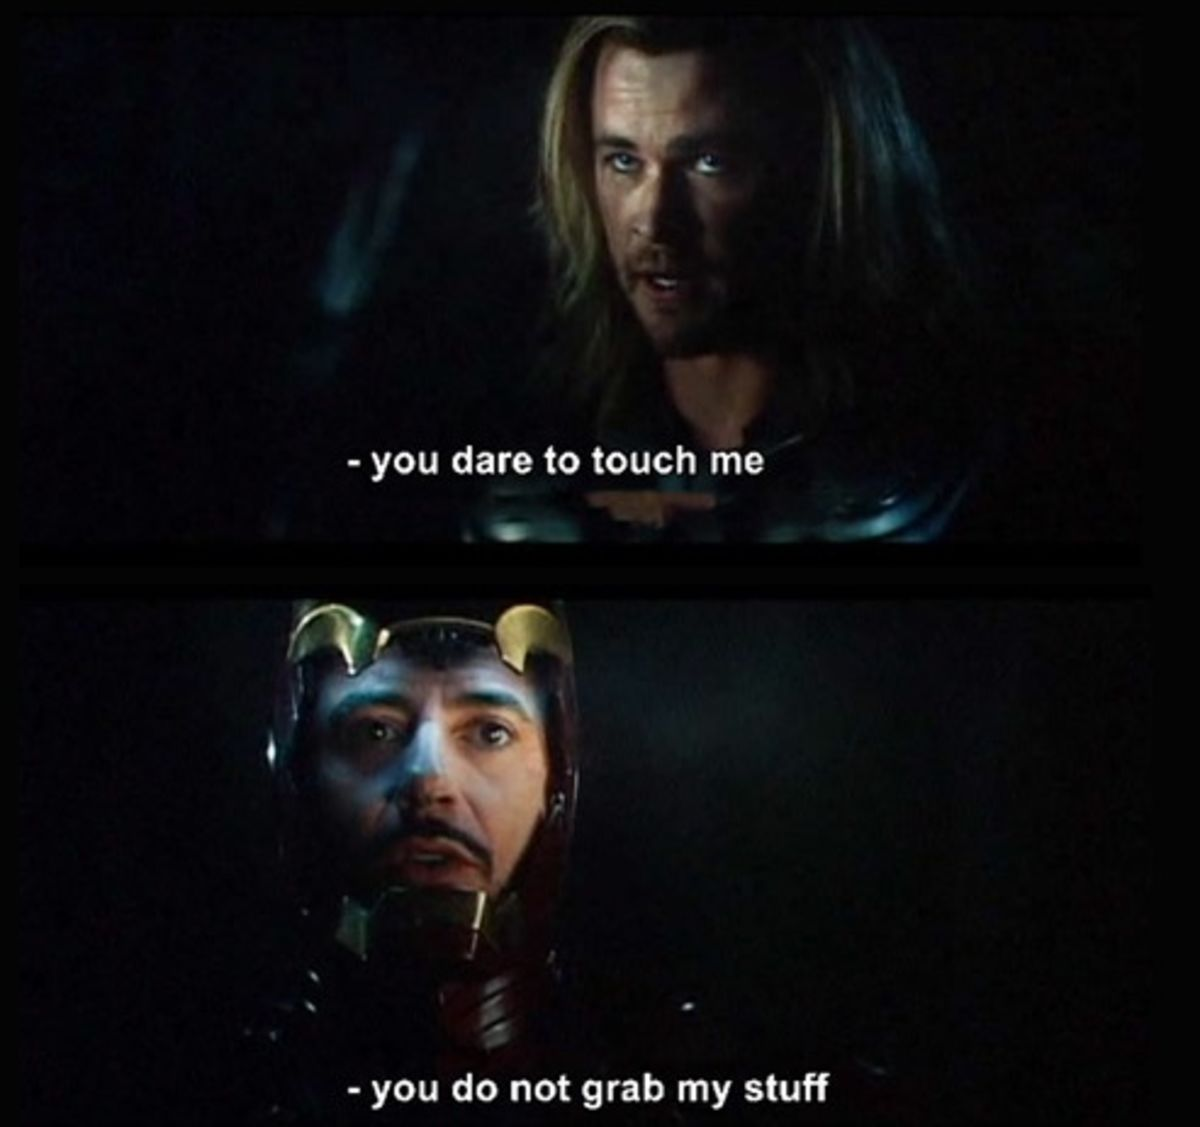 The Avengers is way funnier with these Chinese bootleg subtitles